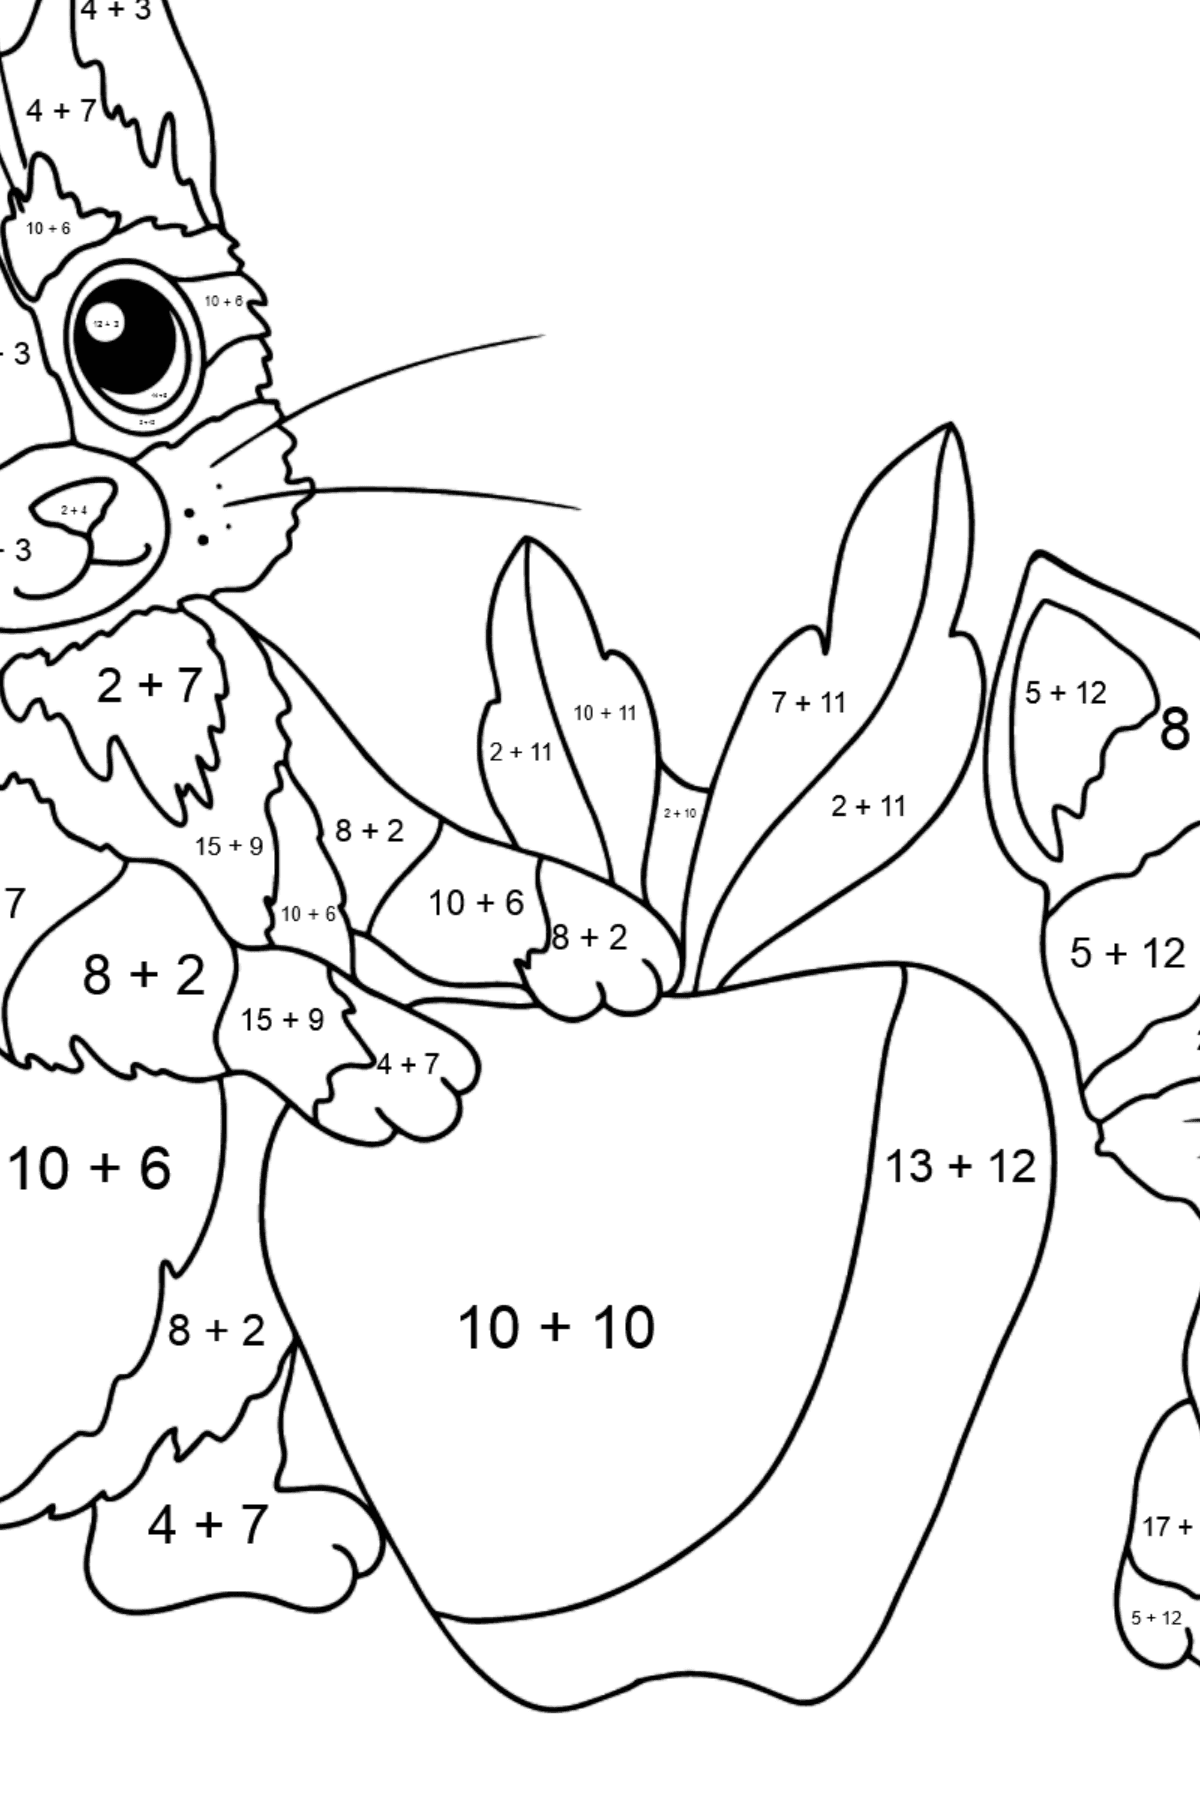 Coloring Page - Kittens are Having Fun with a Red Apple - Math Coloring - Addition for Kids